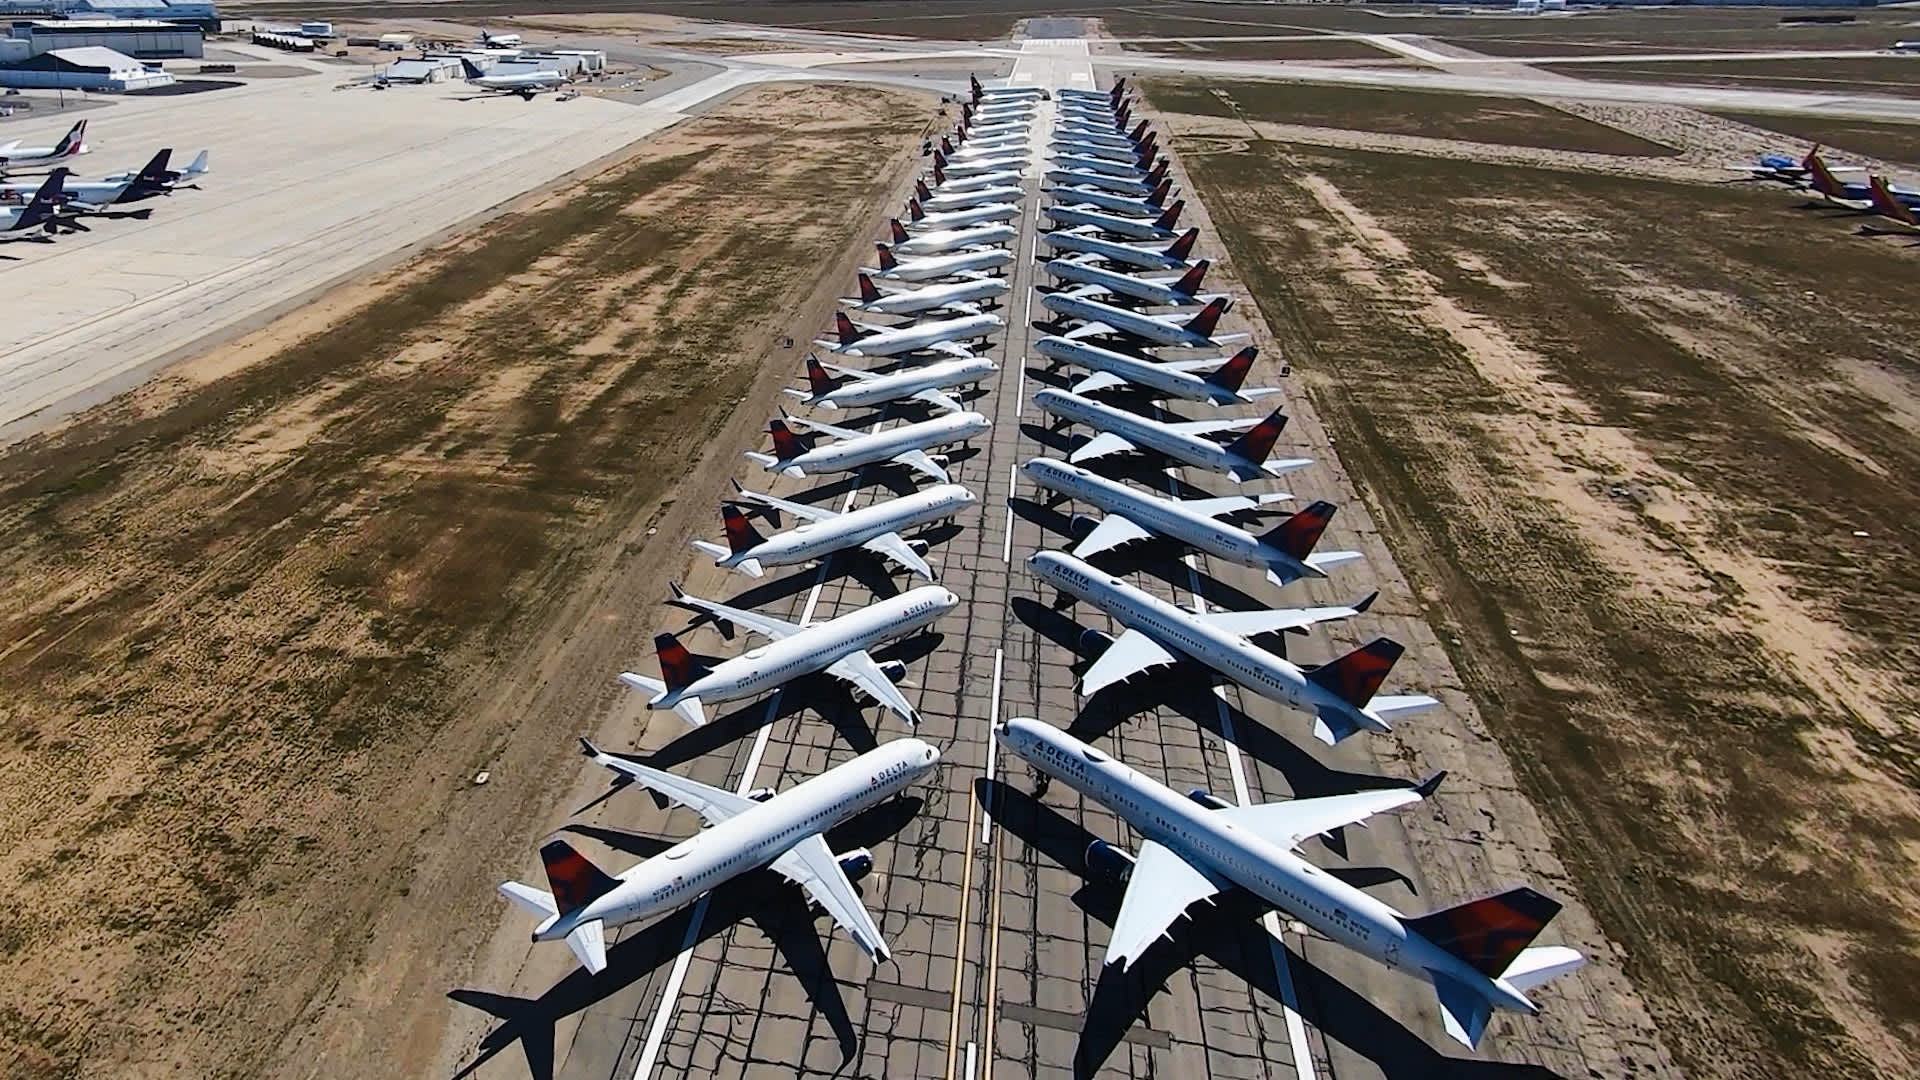 How airlines park thousands of grounded planes amid coronavirus